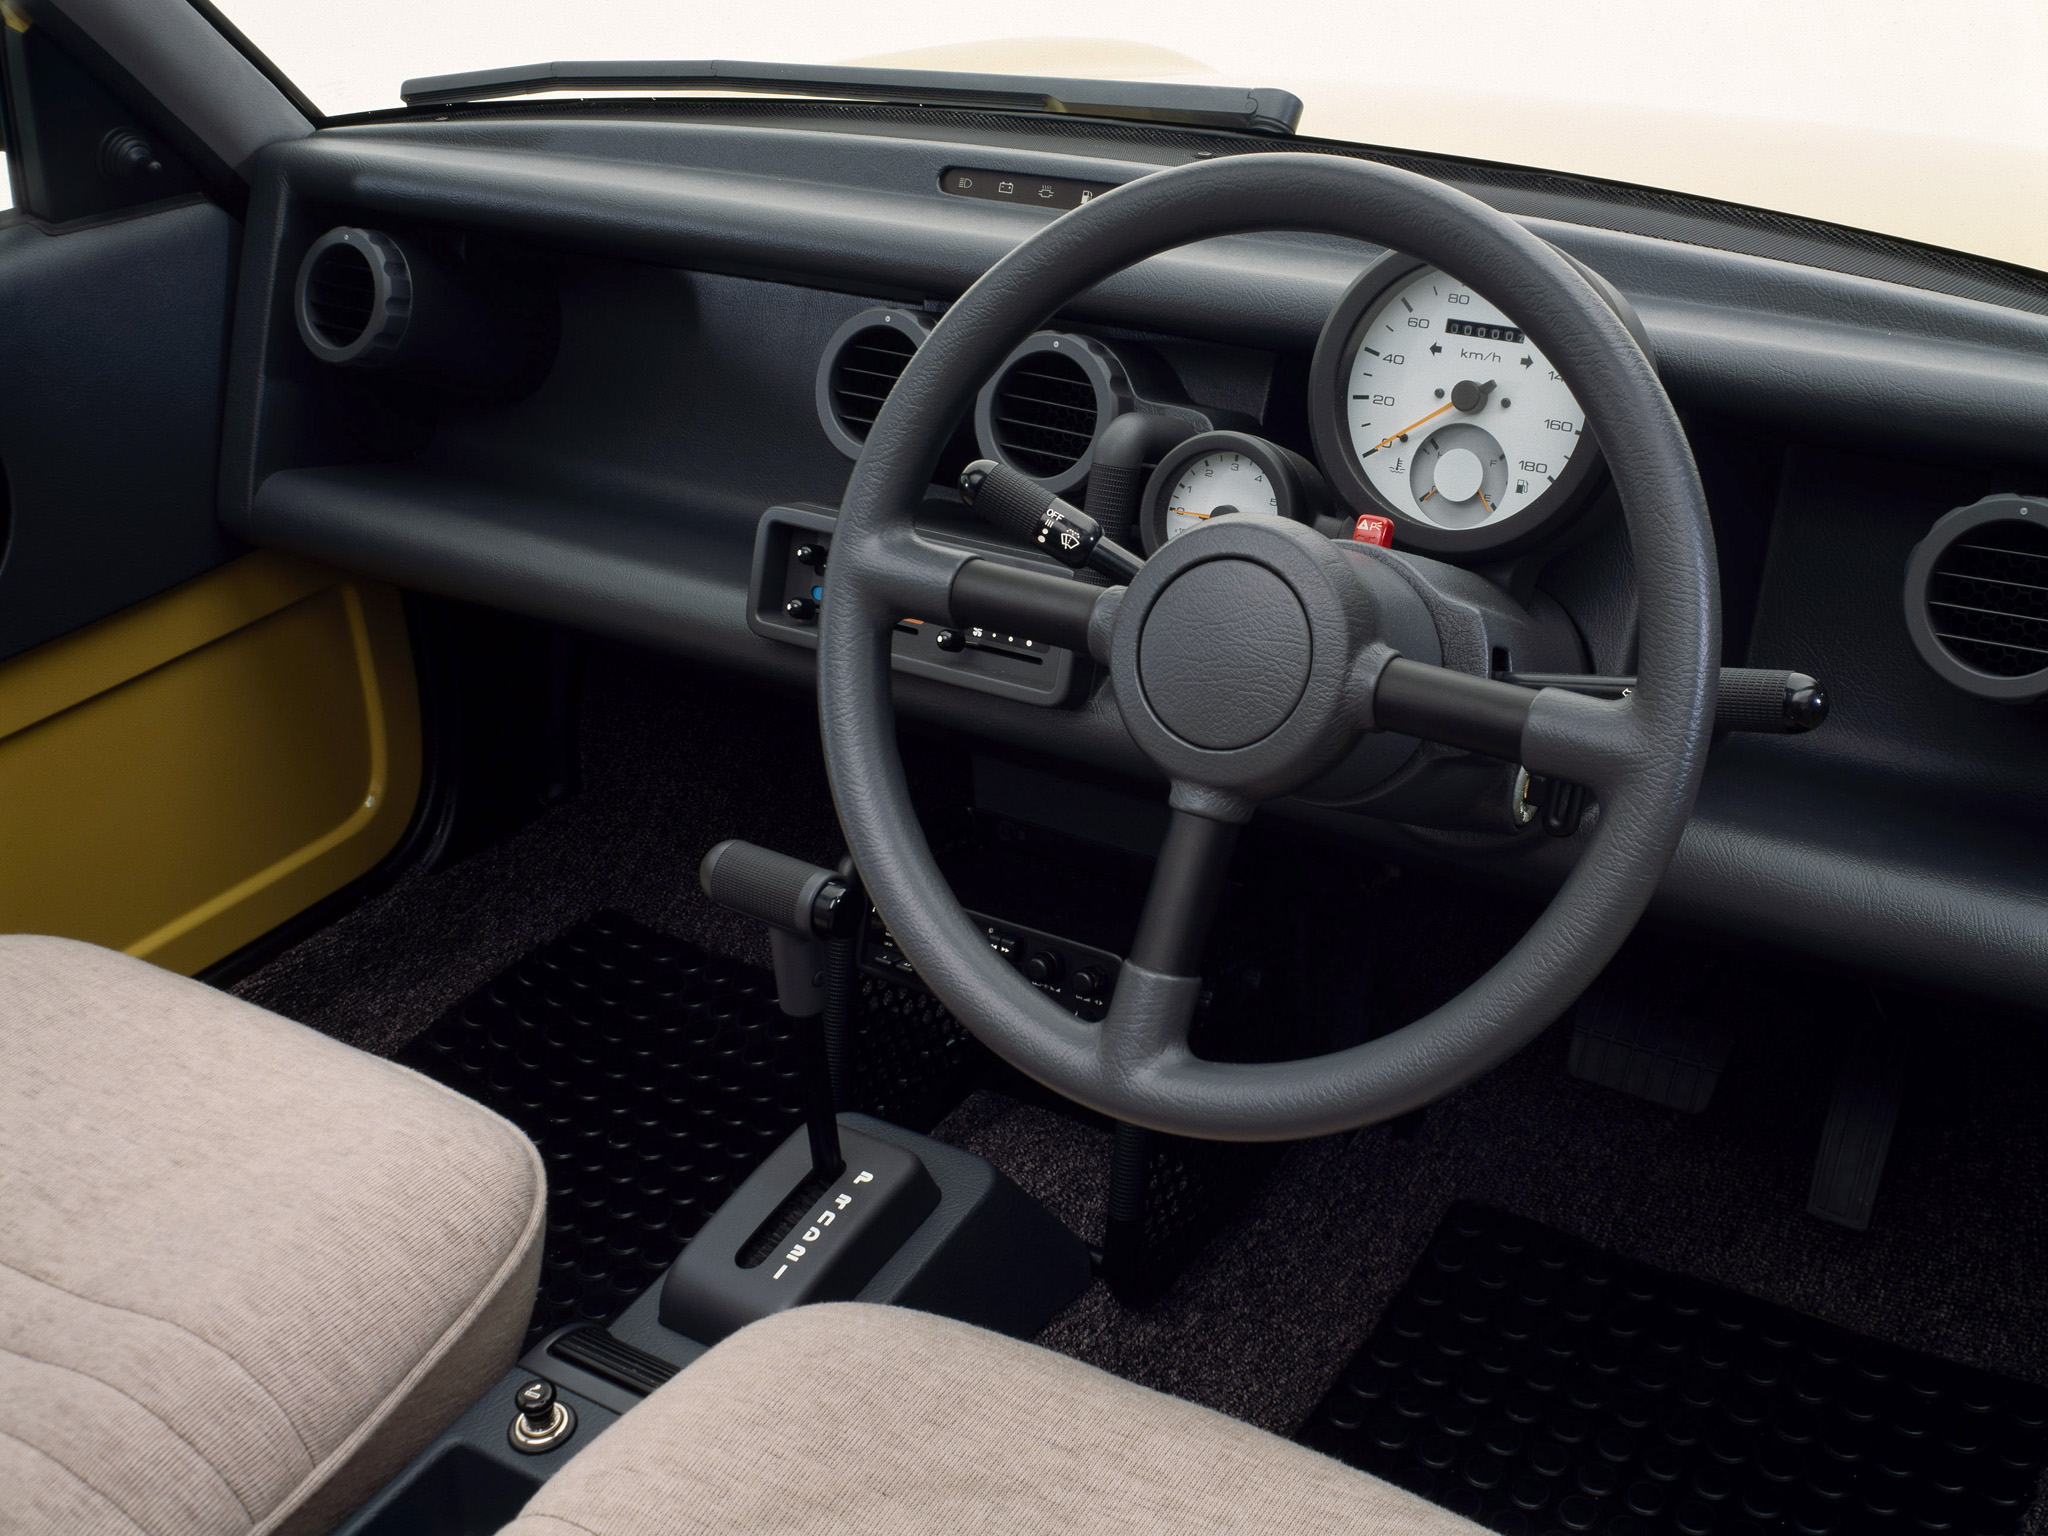 Nissan Be-1 interior